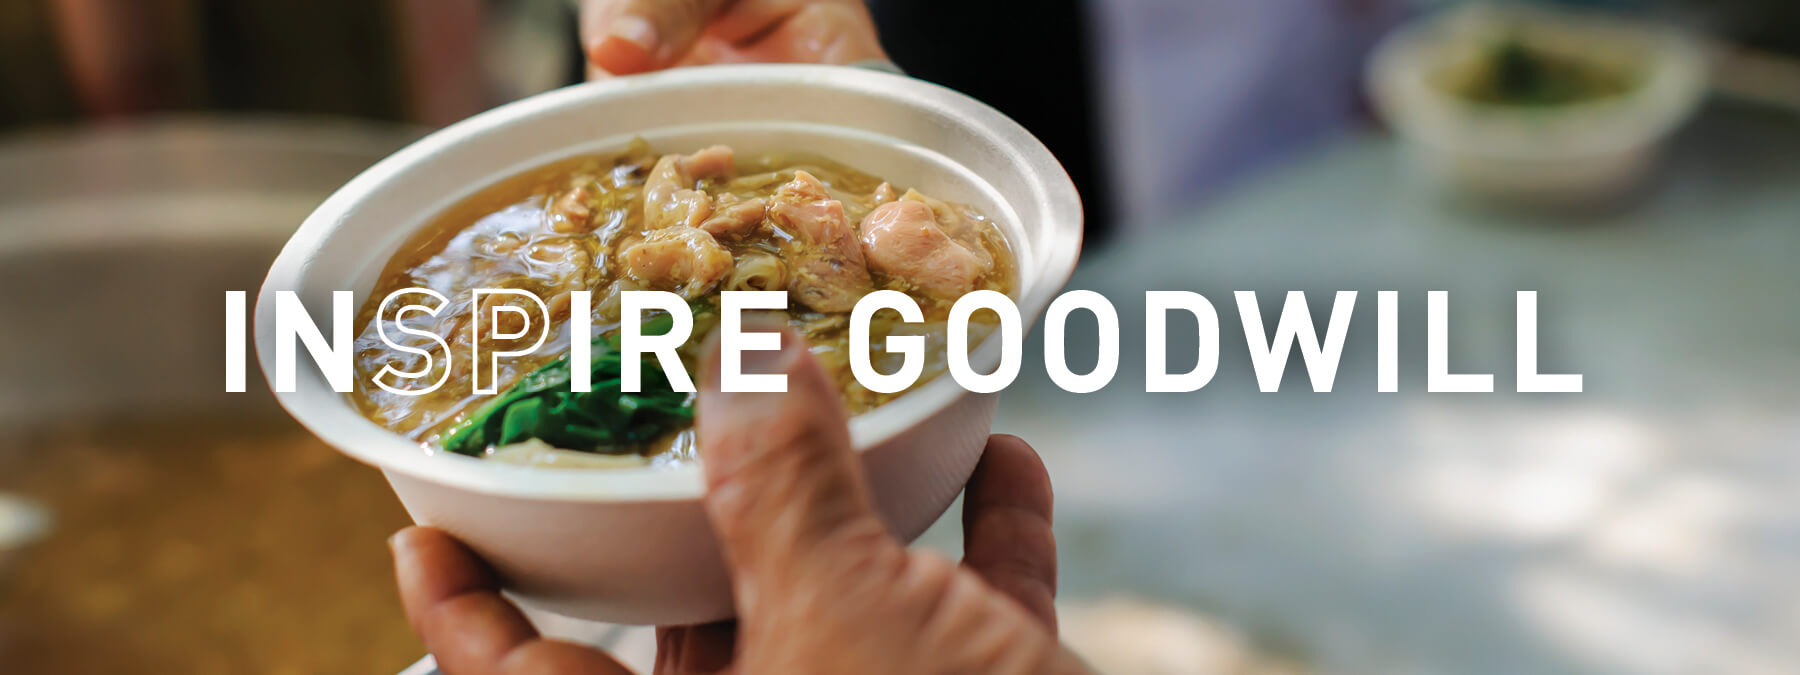 INSPIRE goodwill - giving food to someone